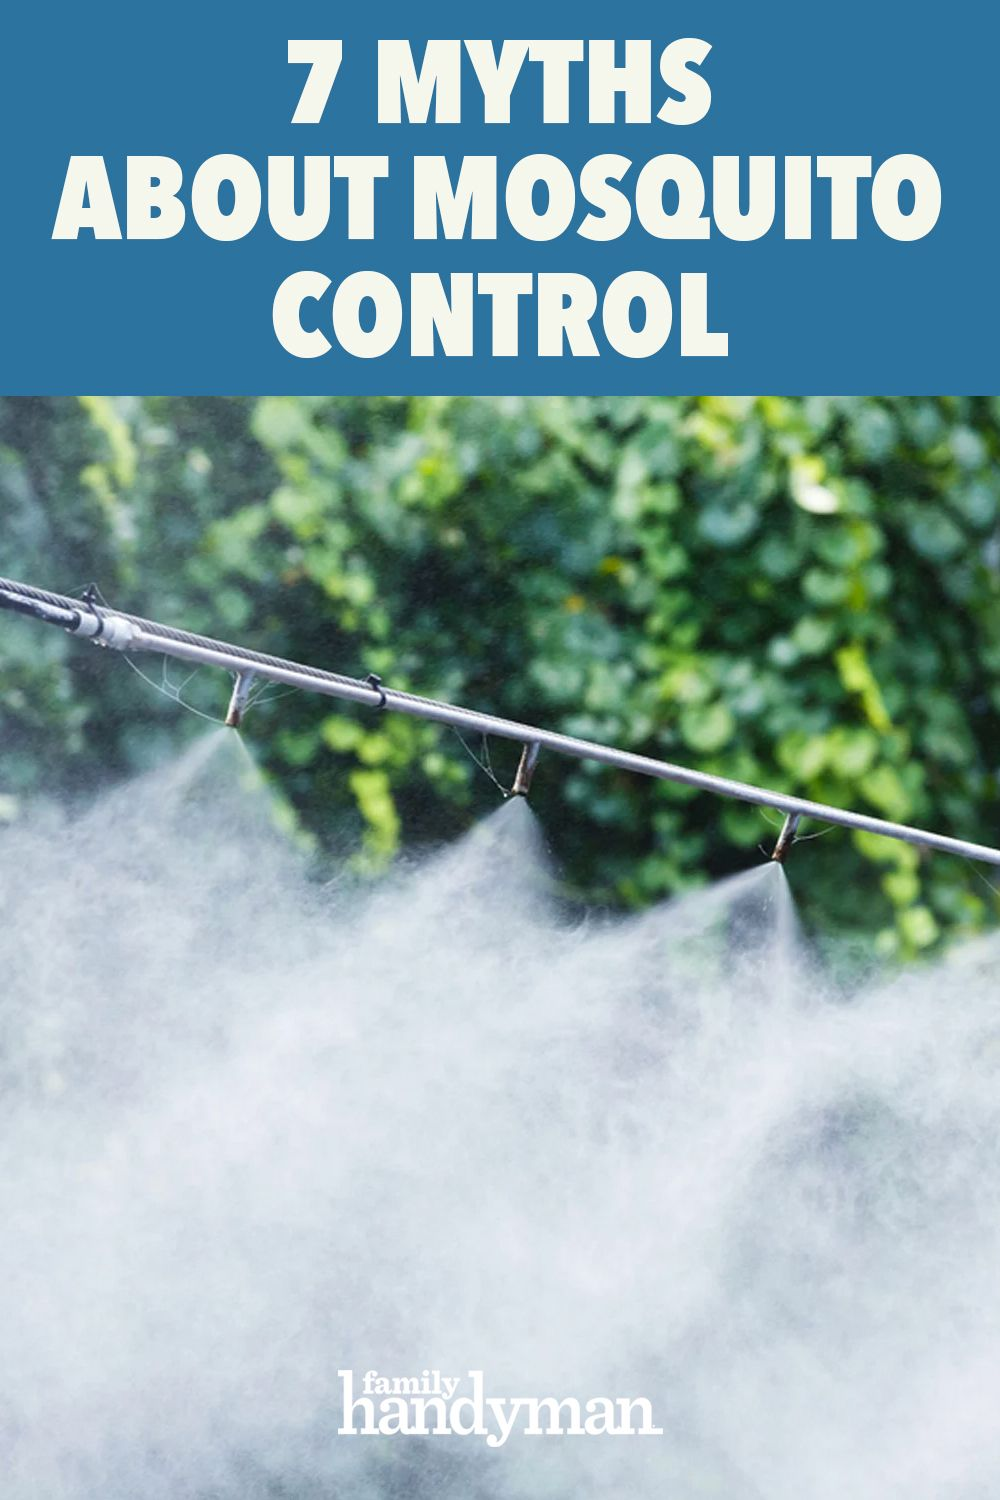 7 Myths About Mosquito Control You Need to Stop Believing